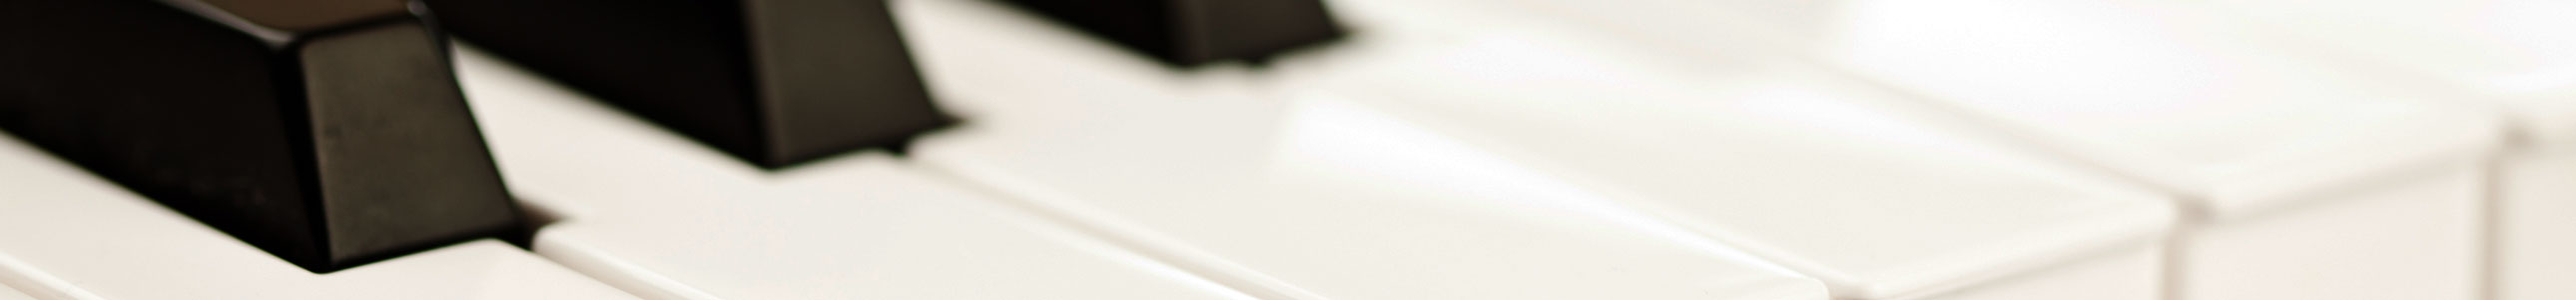 banner_piano